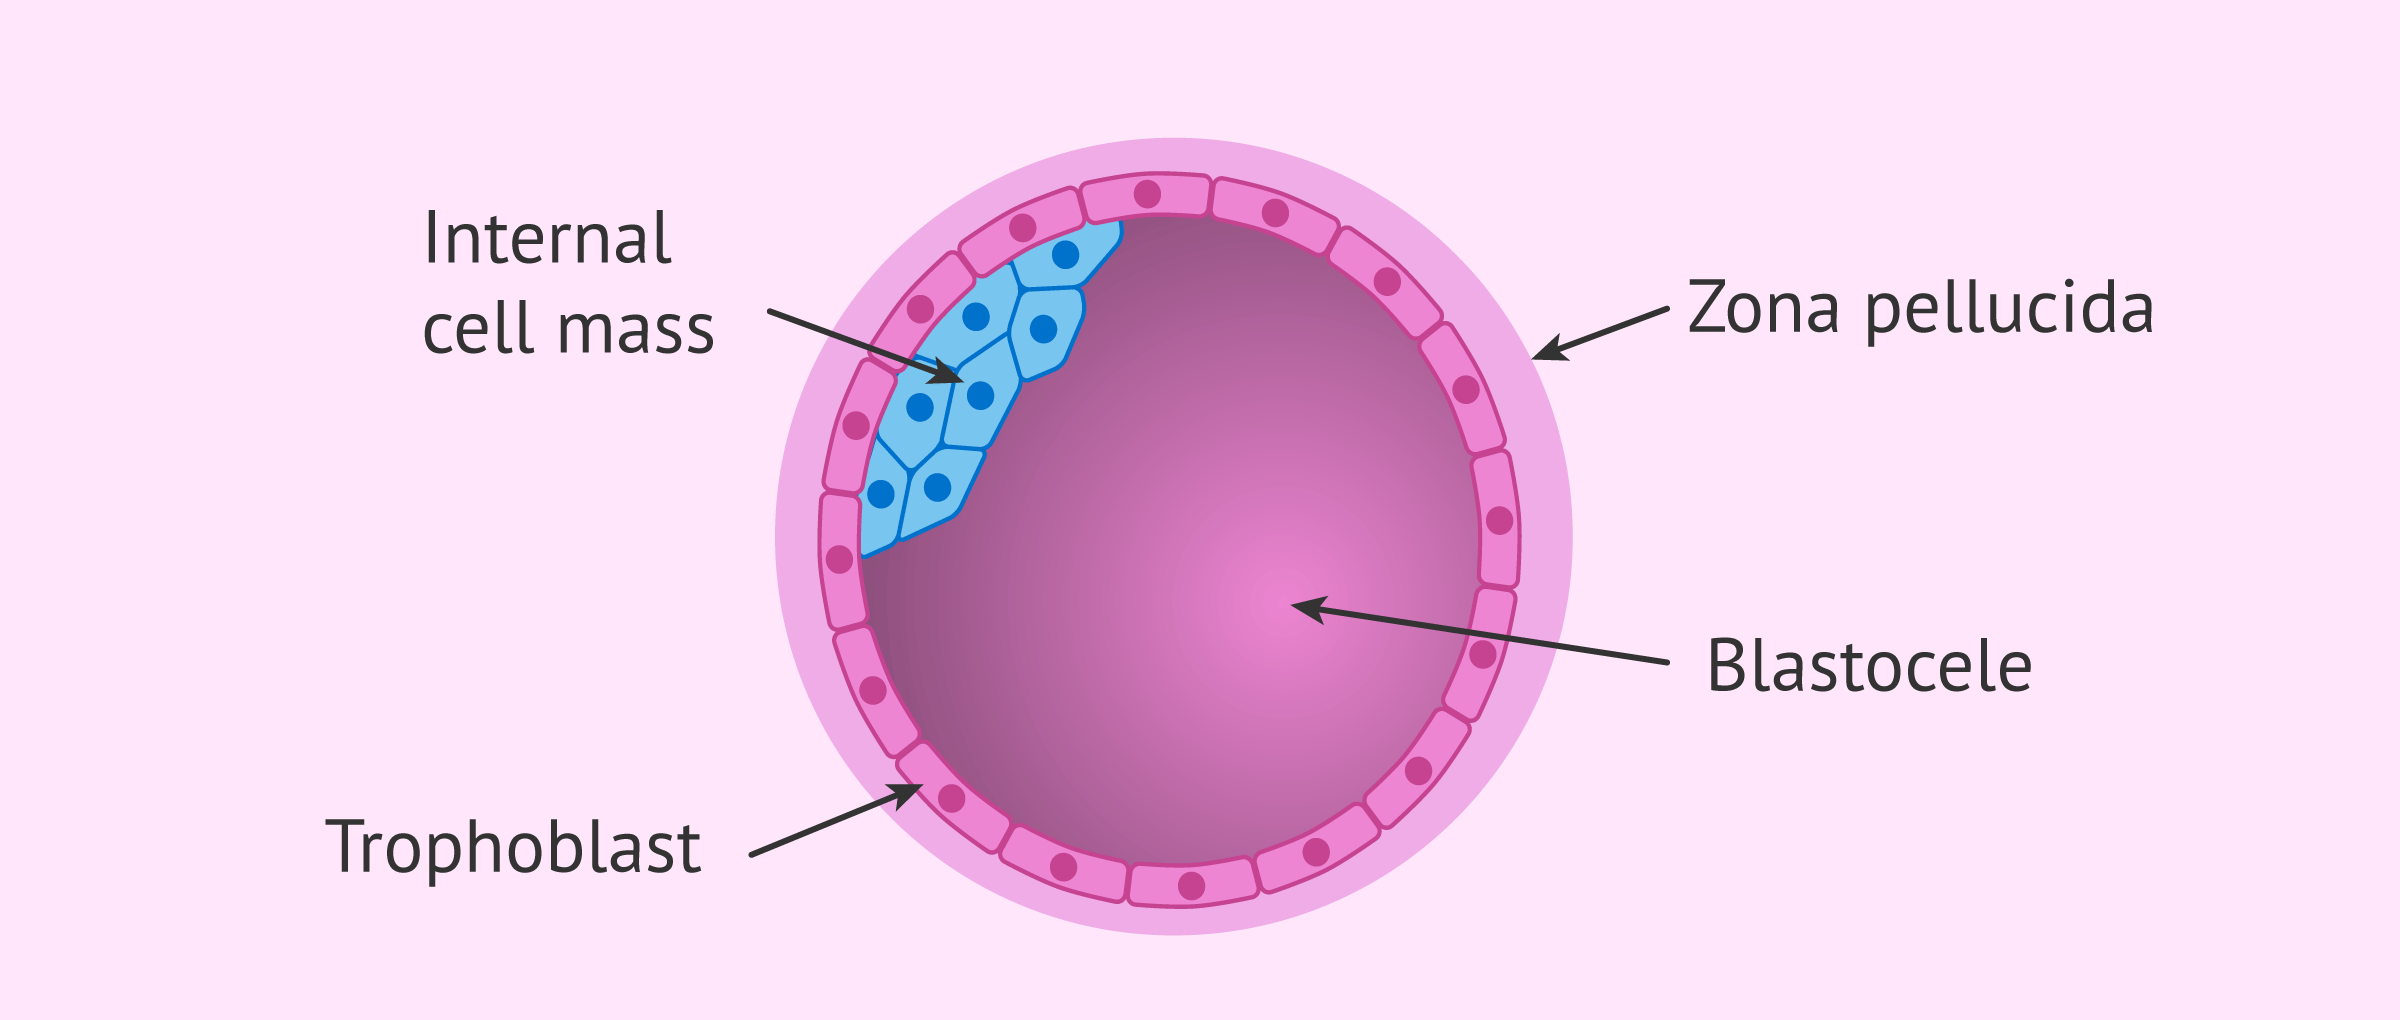 Structure of embryo in the blastocyst stage